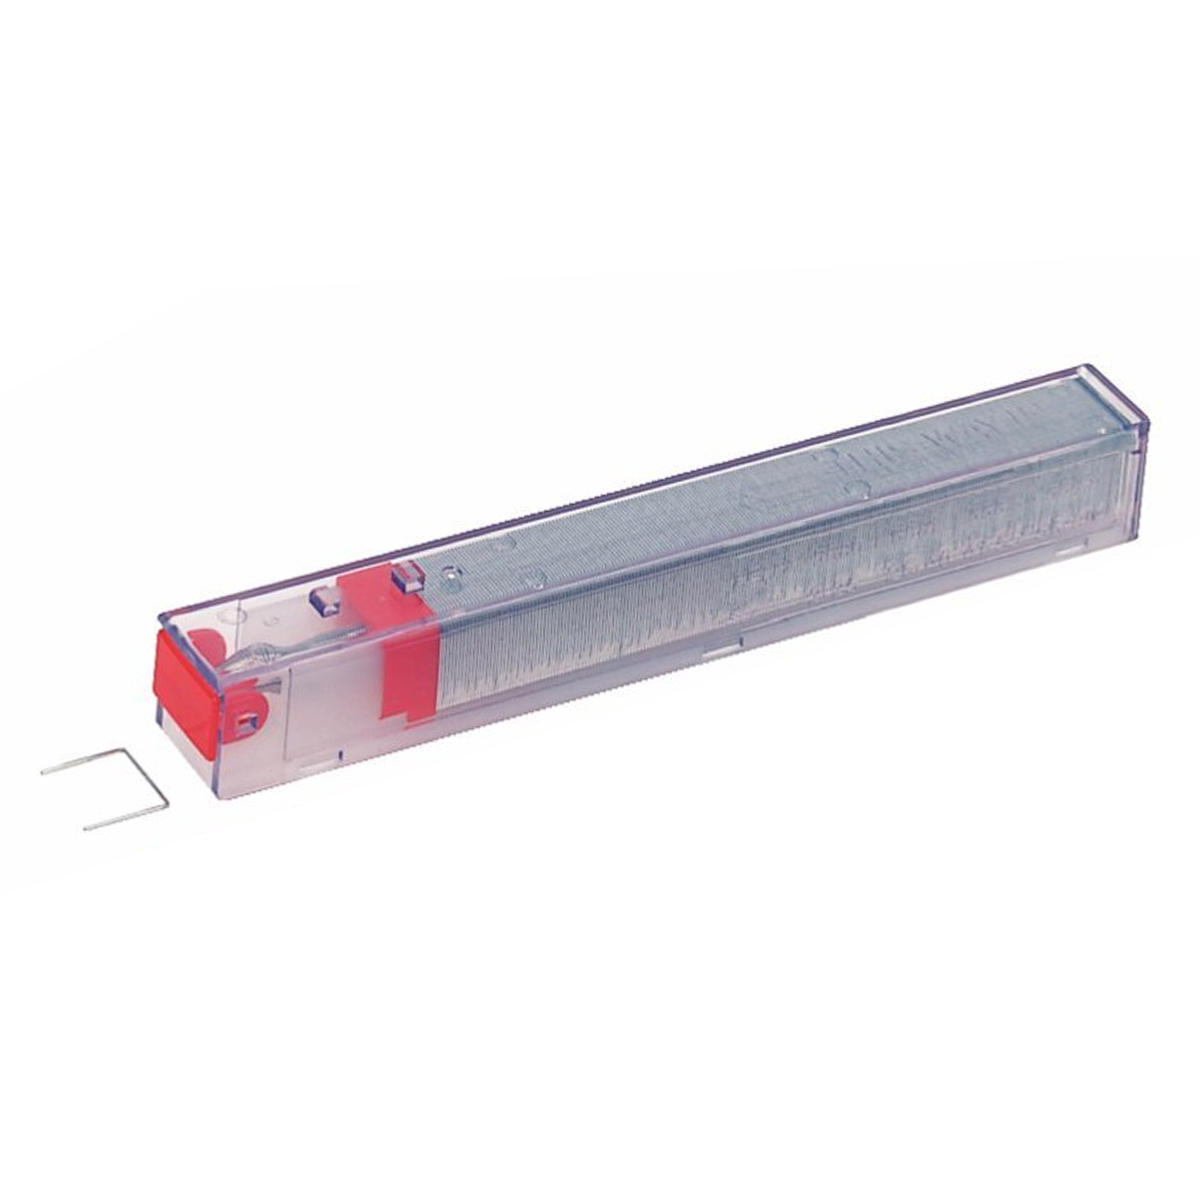 Leitz Power Performance K12 Red Staple Cartridge